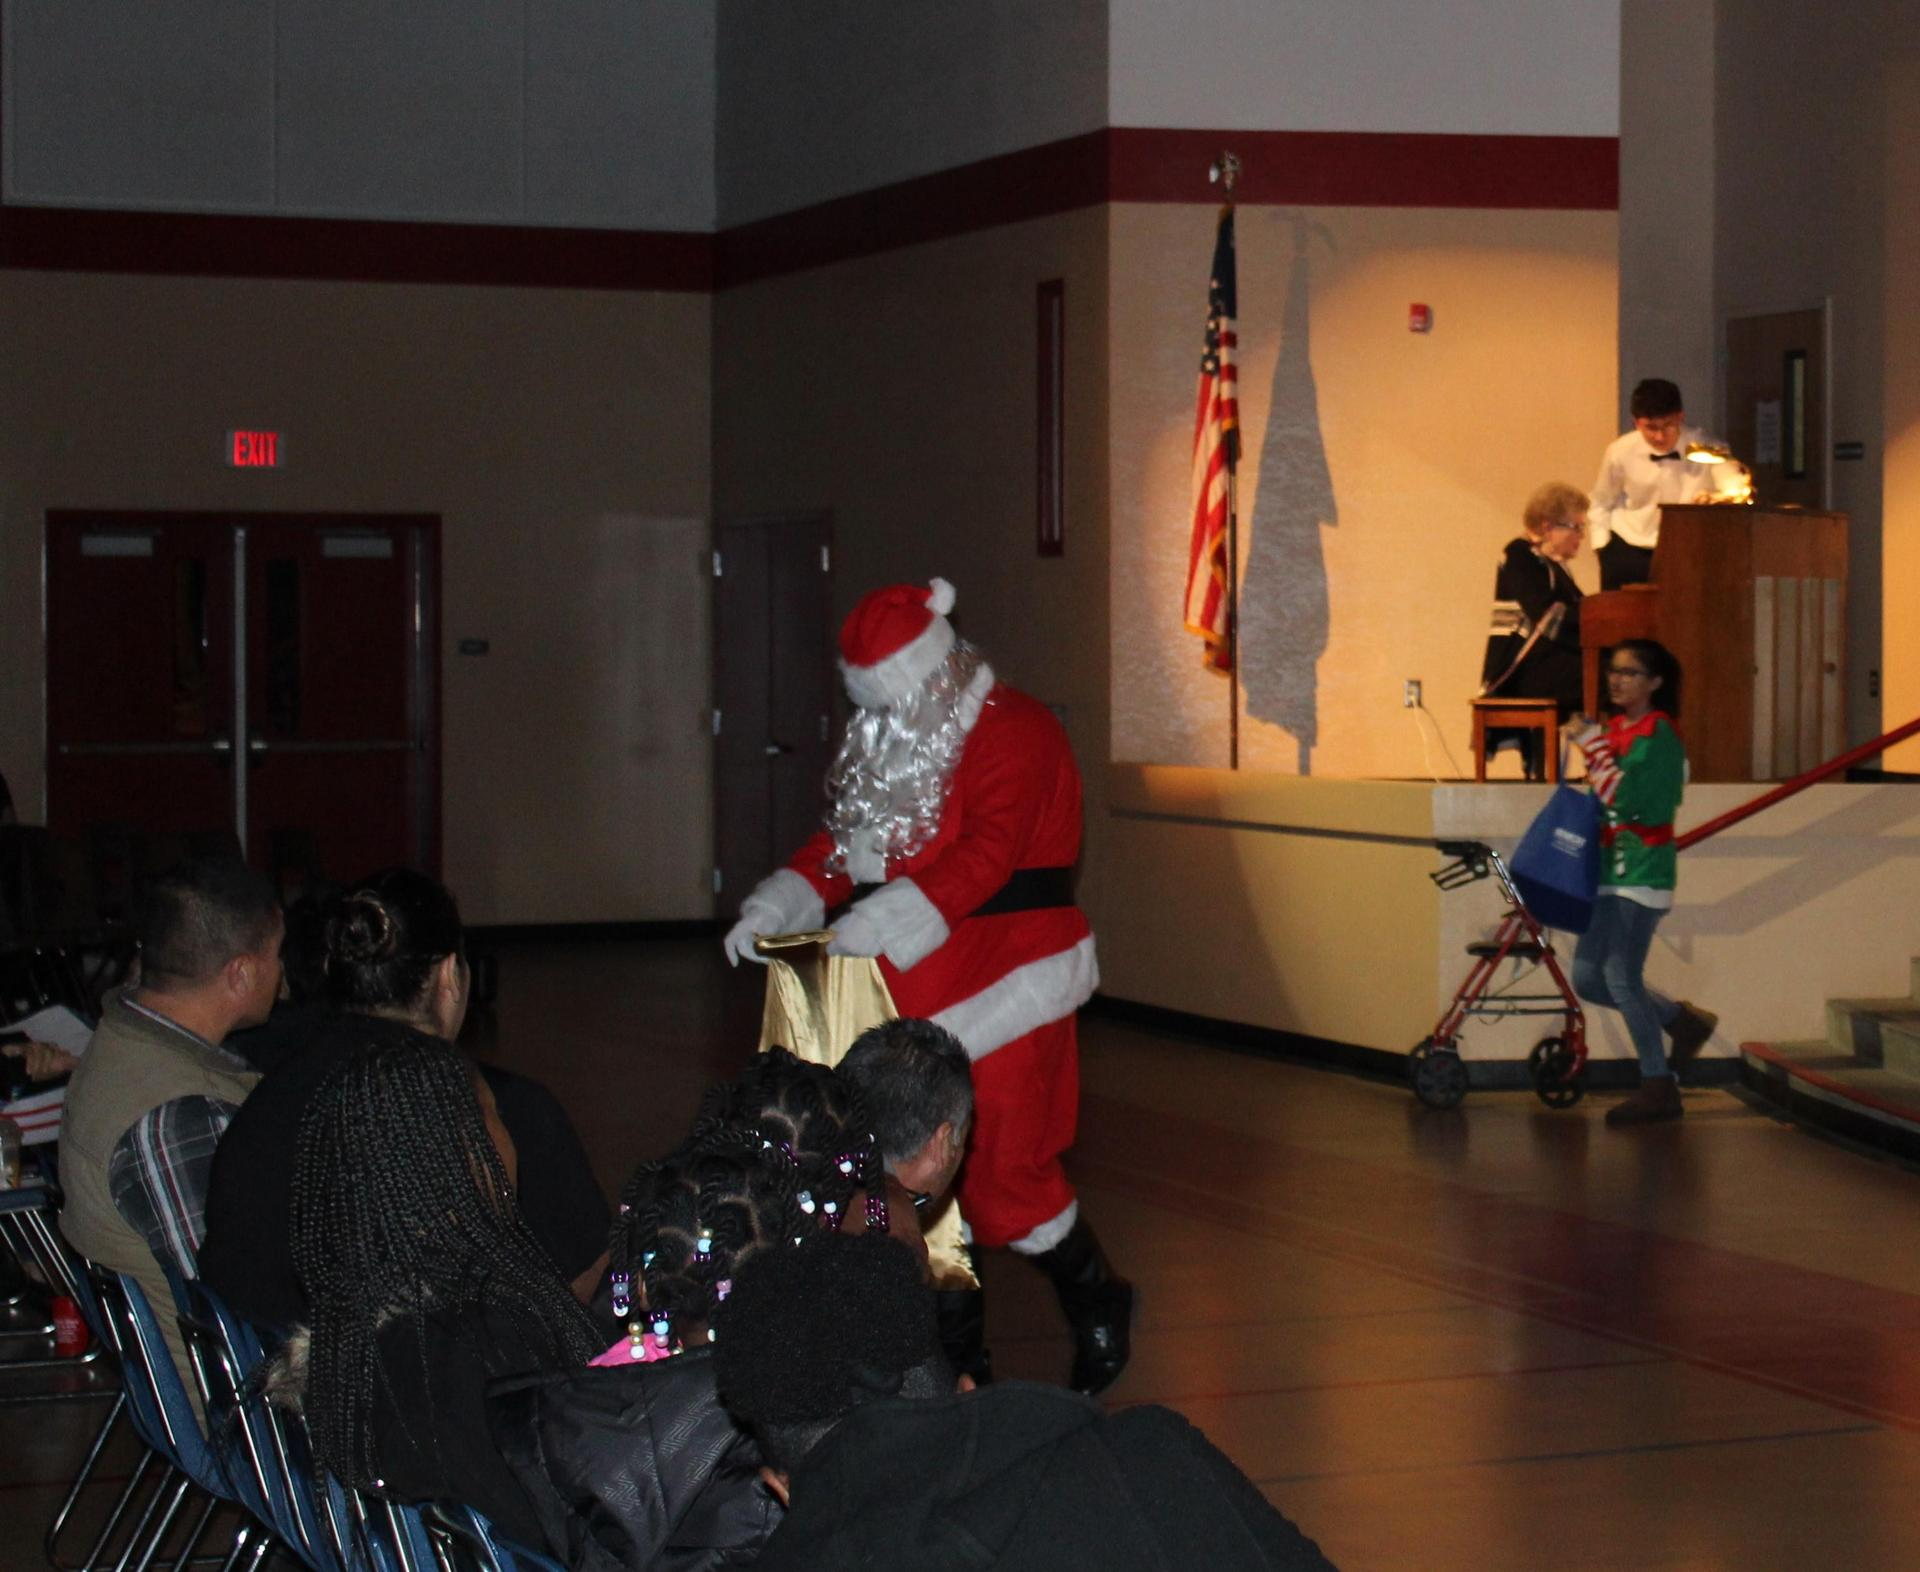 Santa gives gifts to the audience.